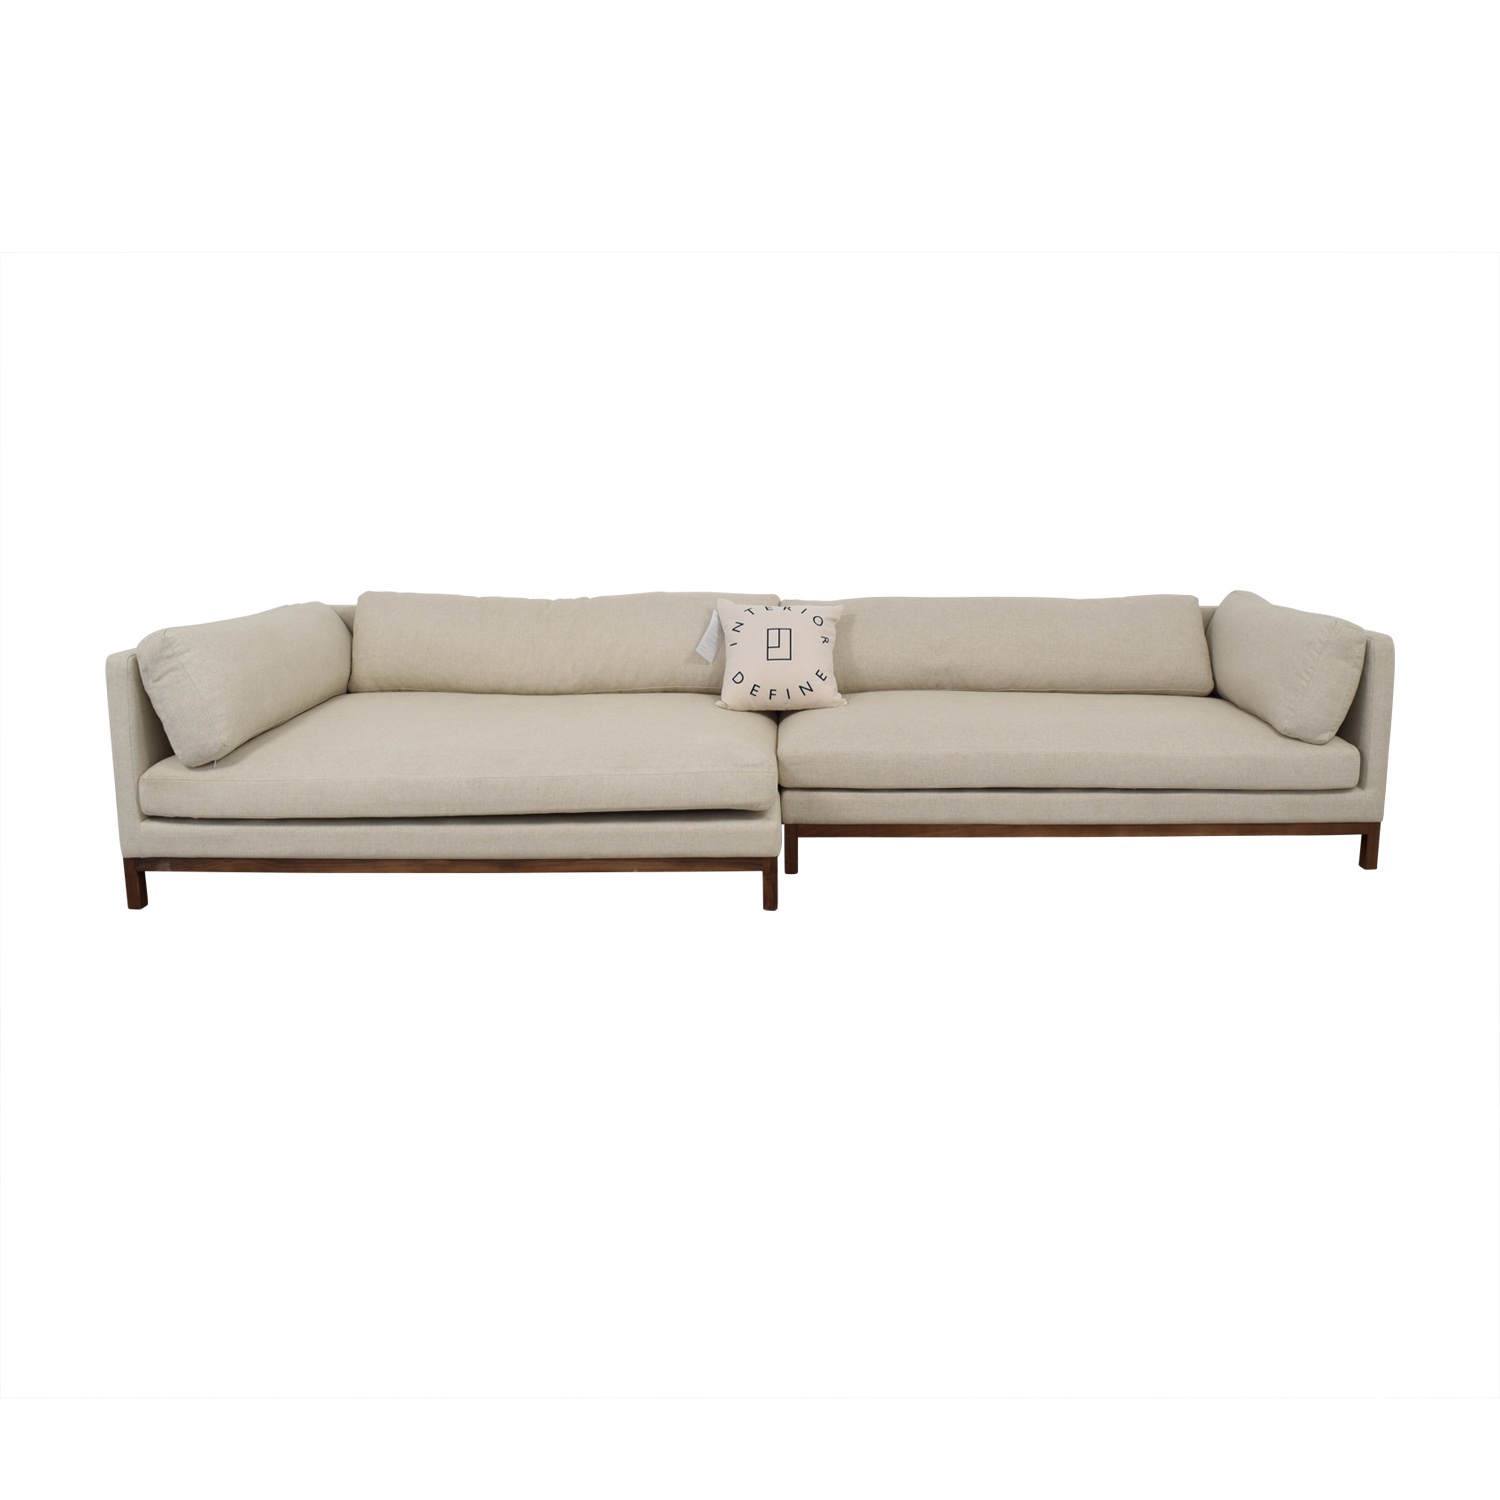 Shop Jasper Left Chaise Sectional Online